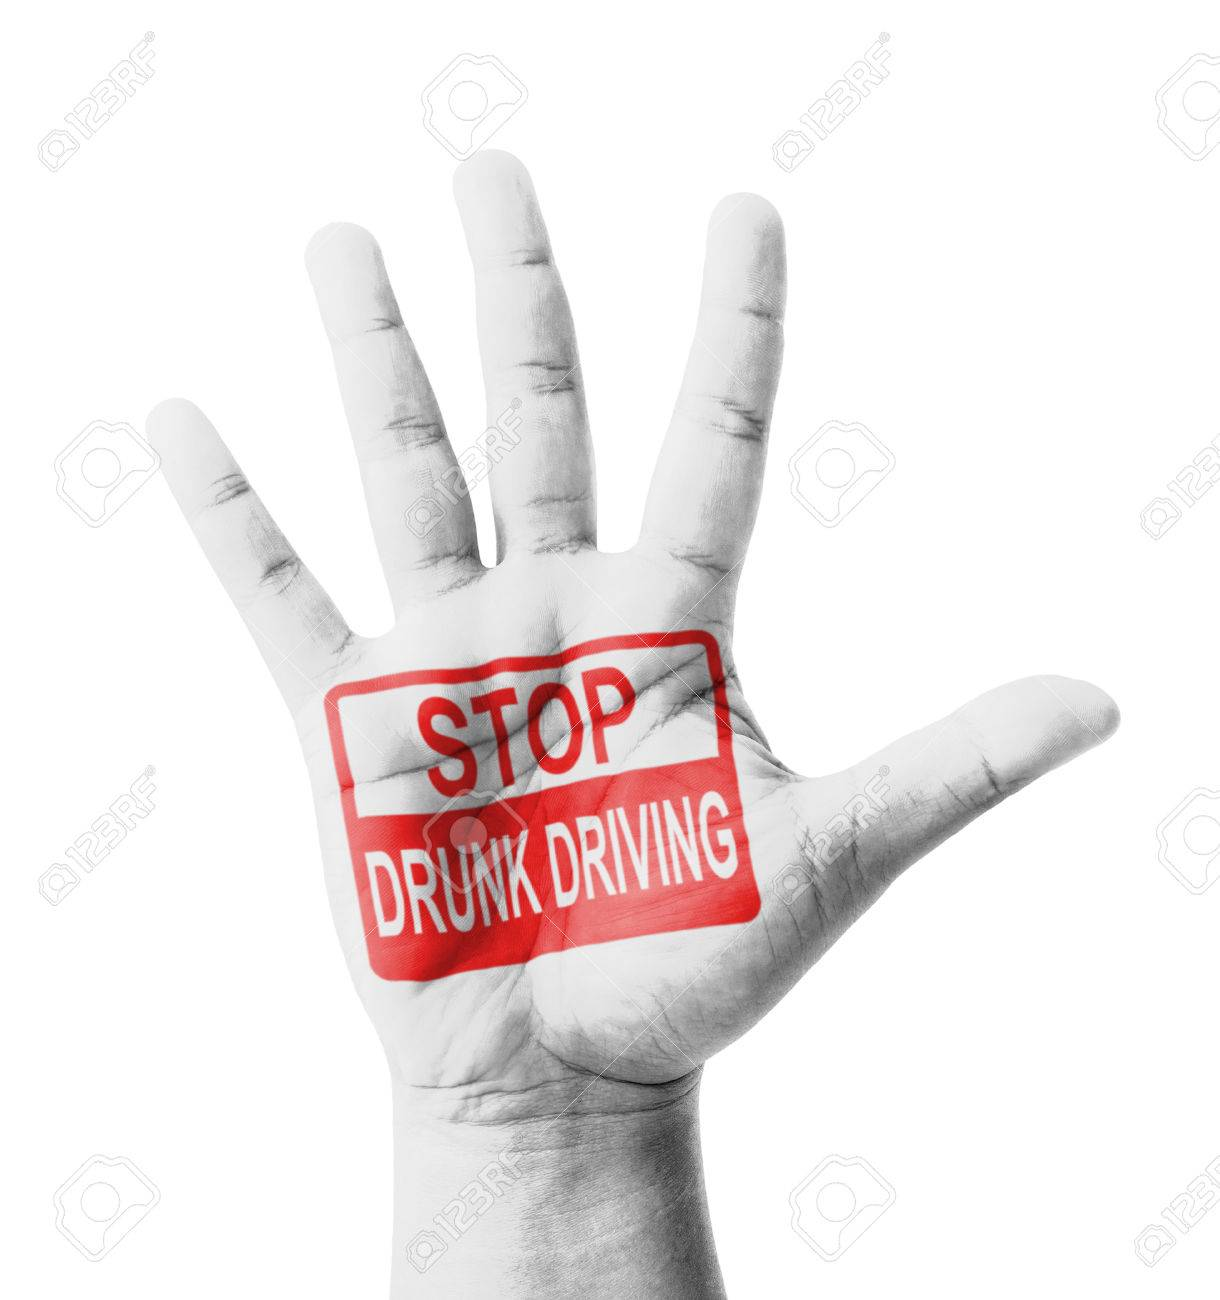 Open hand raised, Stop Drunk Driving sign painted, multi purpose concept - isolated on white background Stock Photo - 25645567